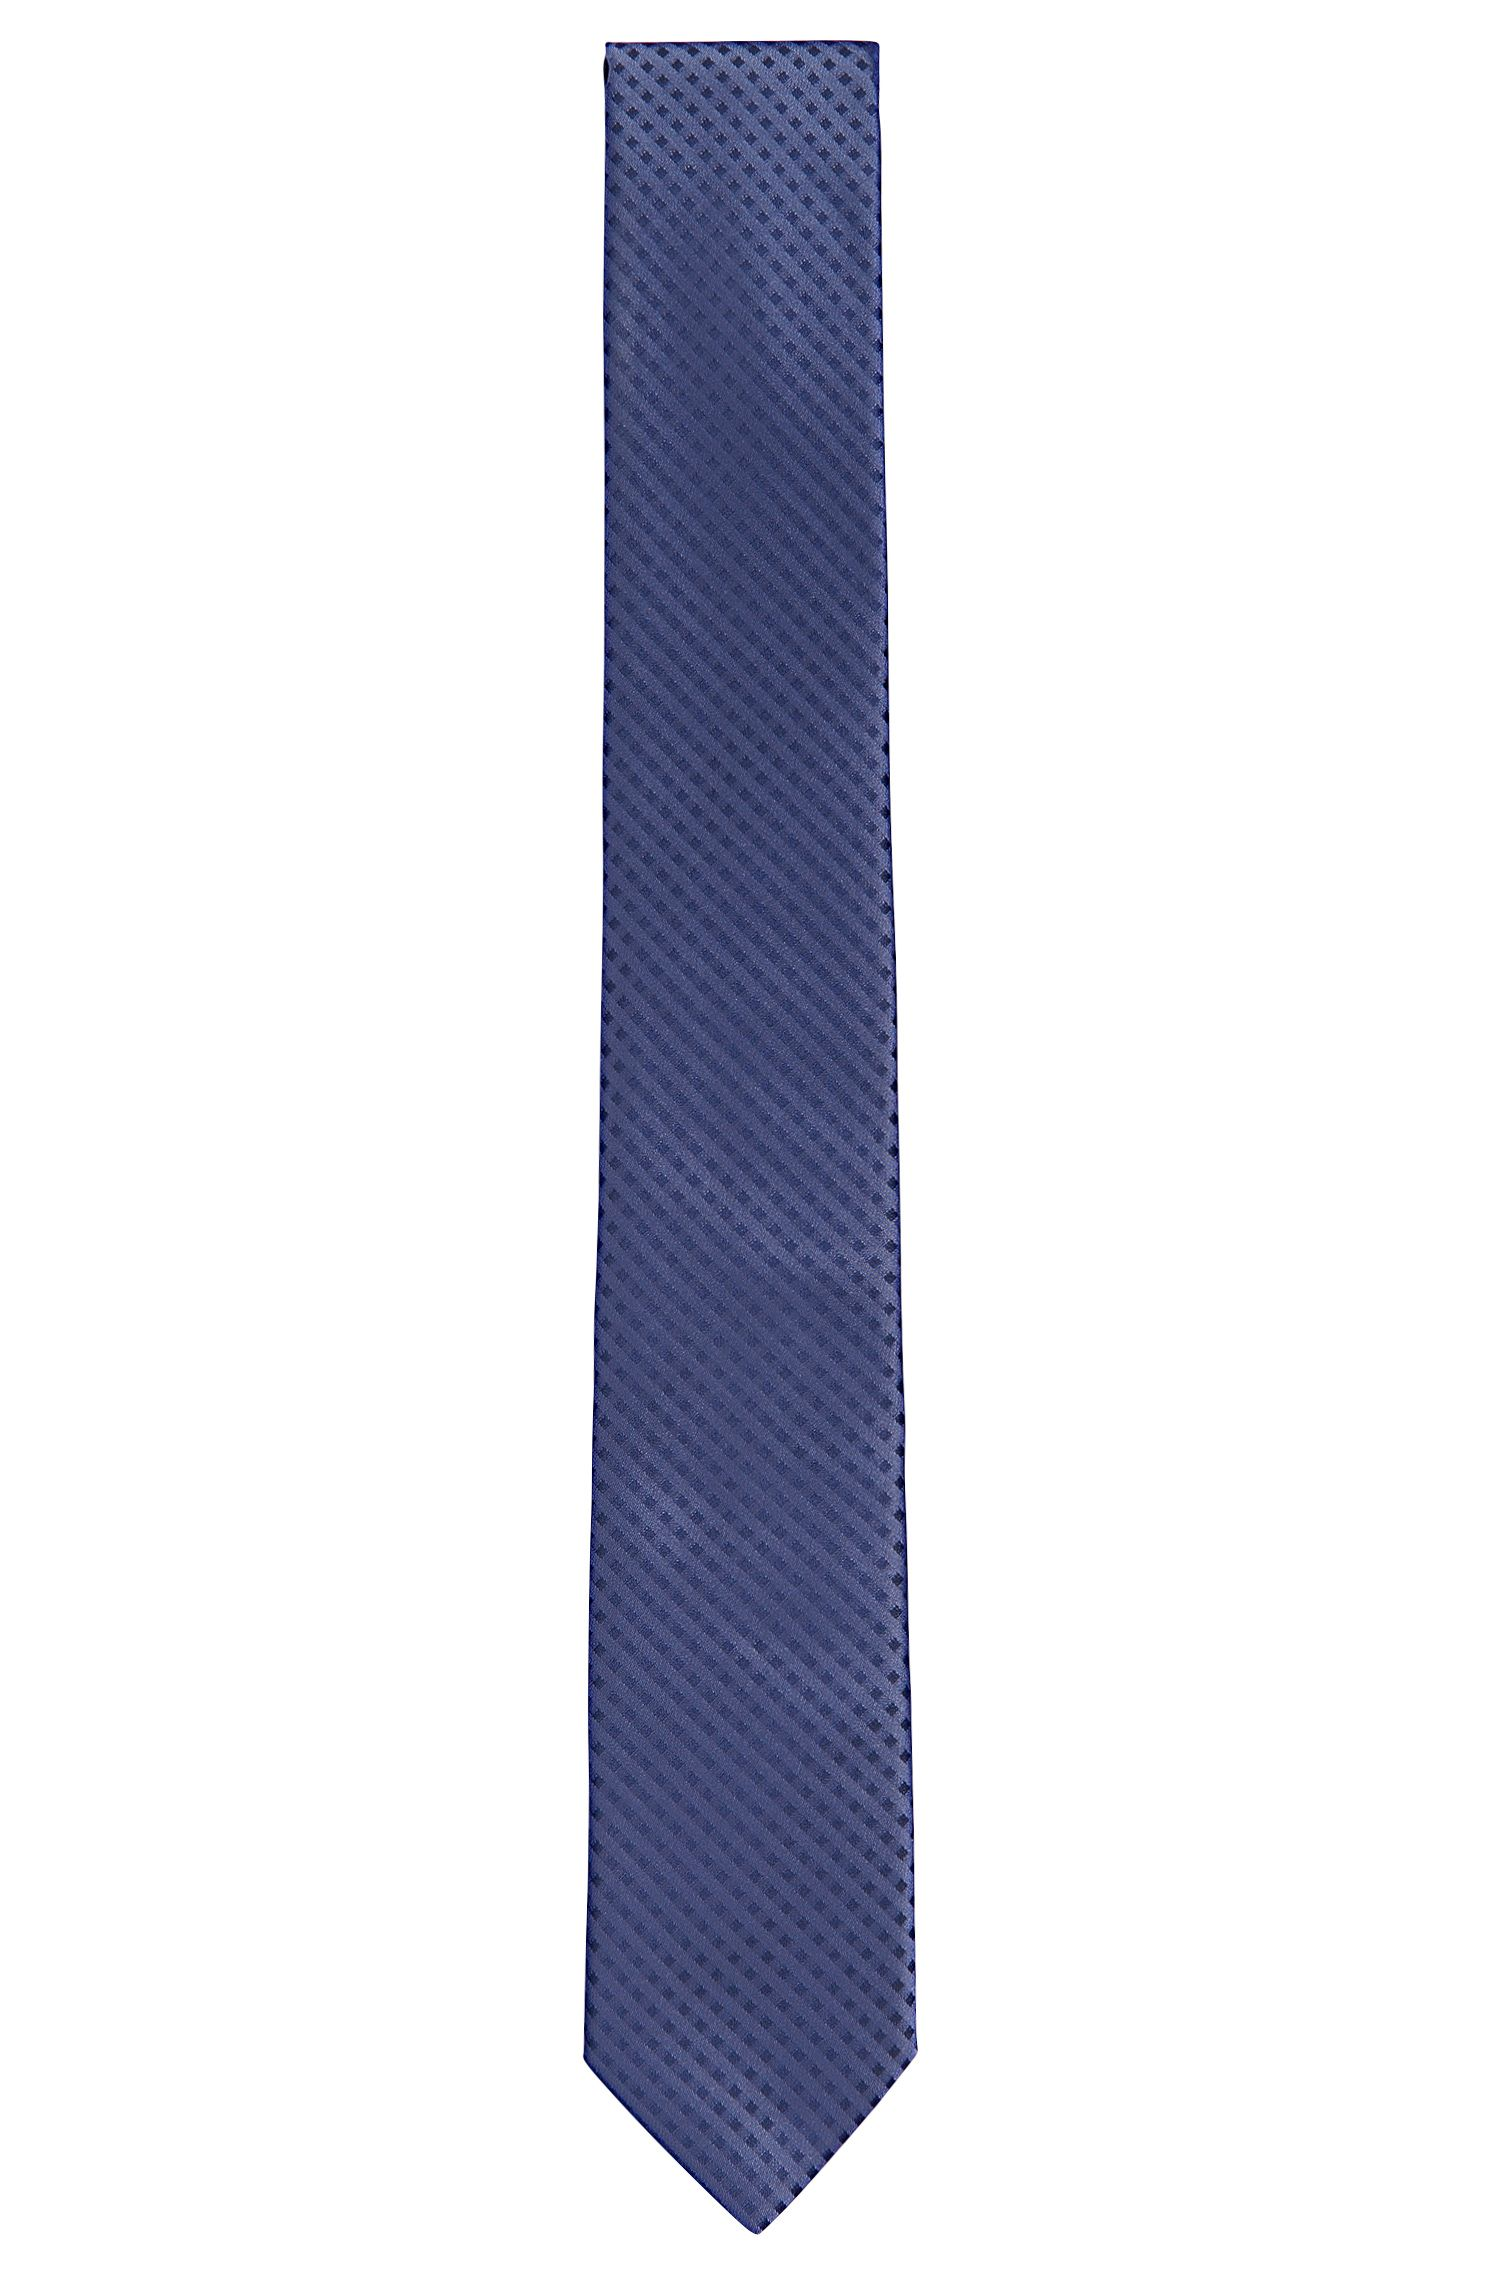 Diamond Embroidered Silk Tie, Slim | Tie 6 cm